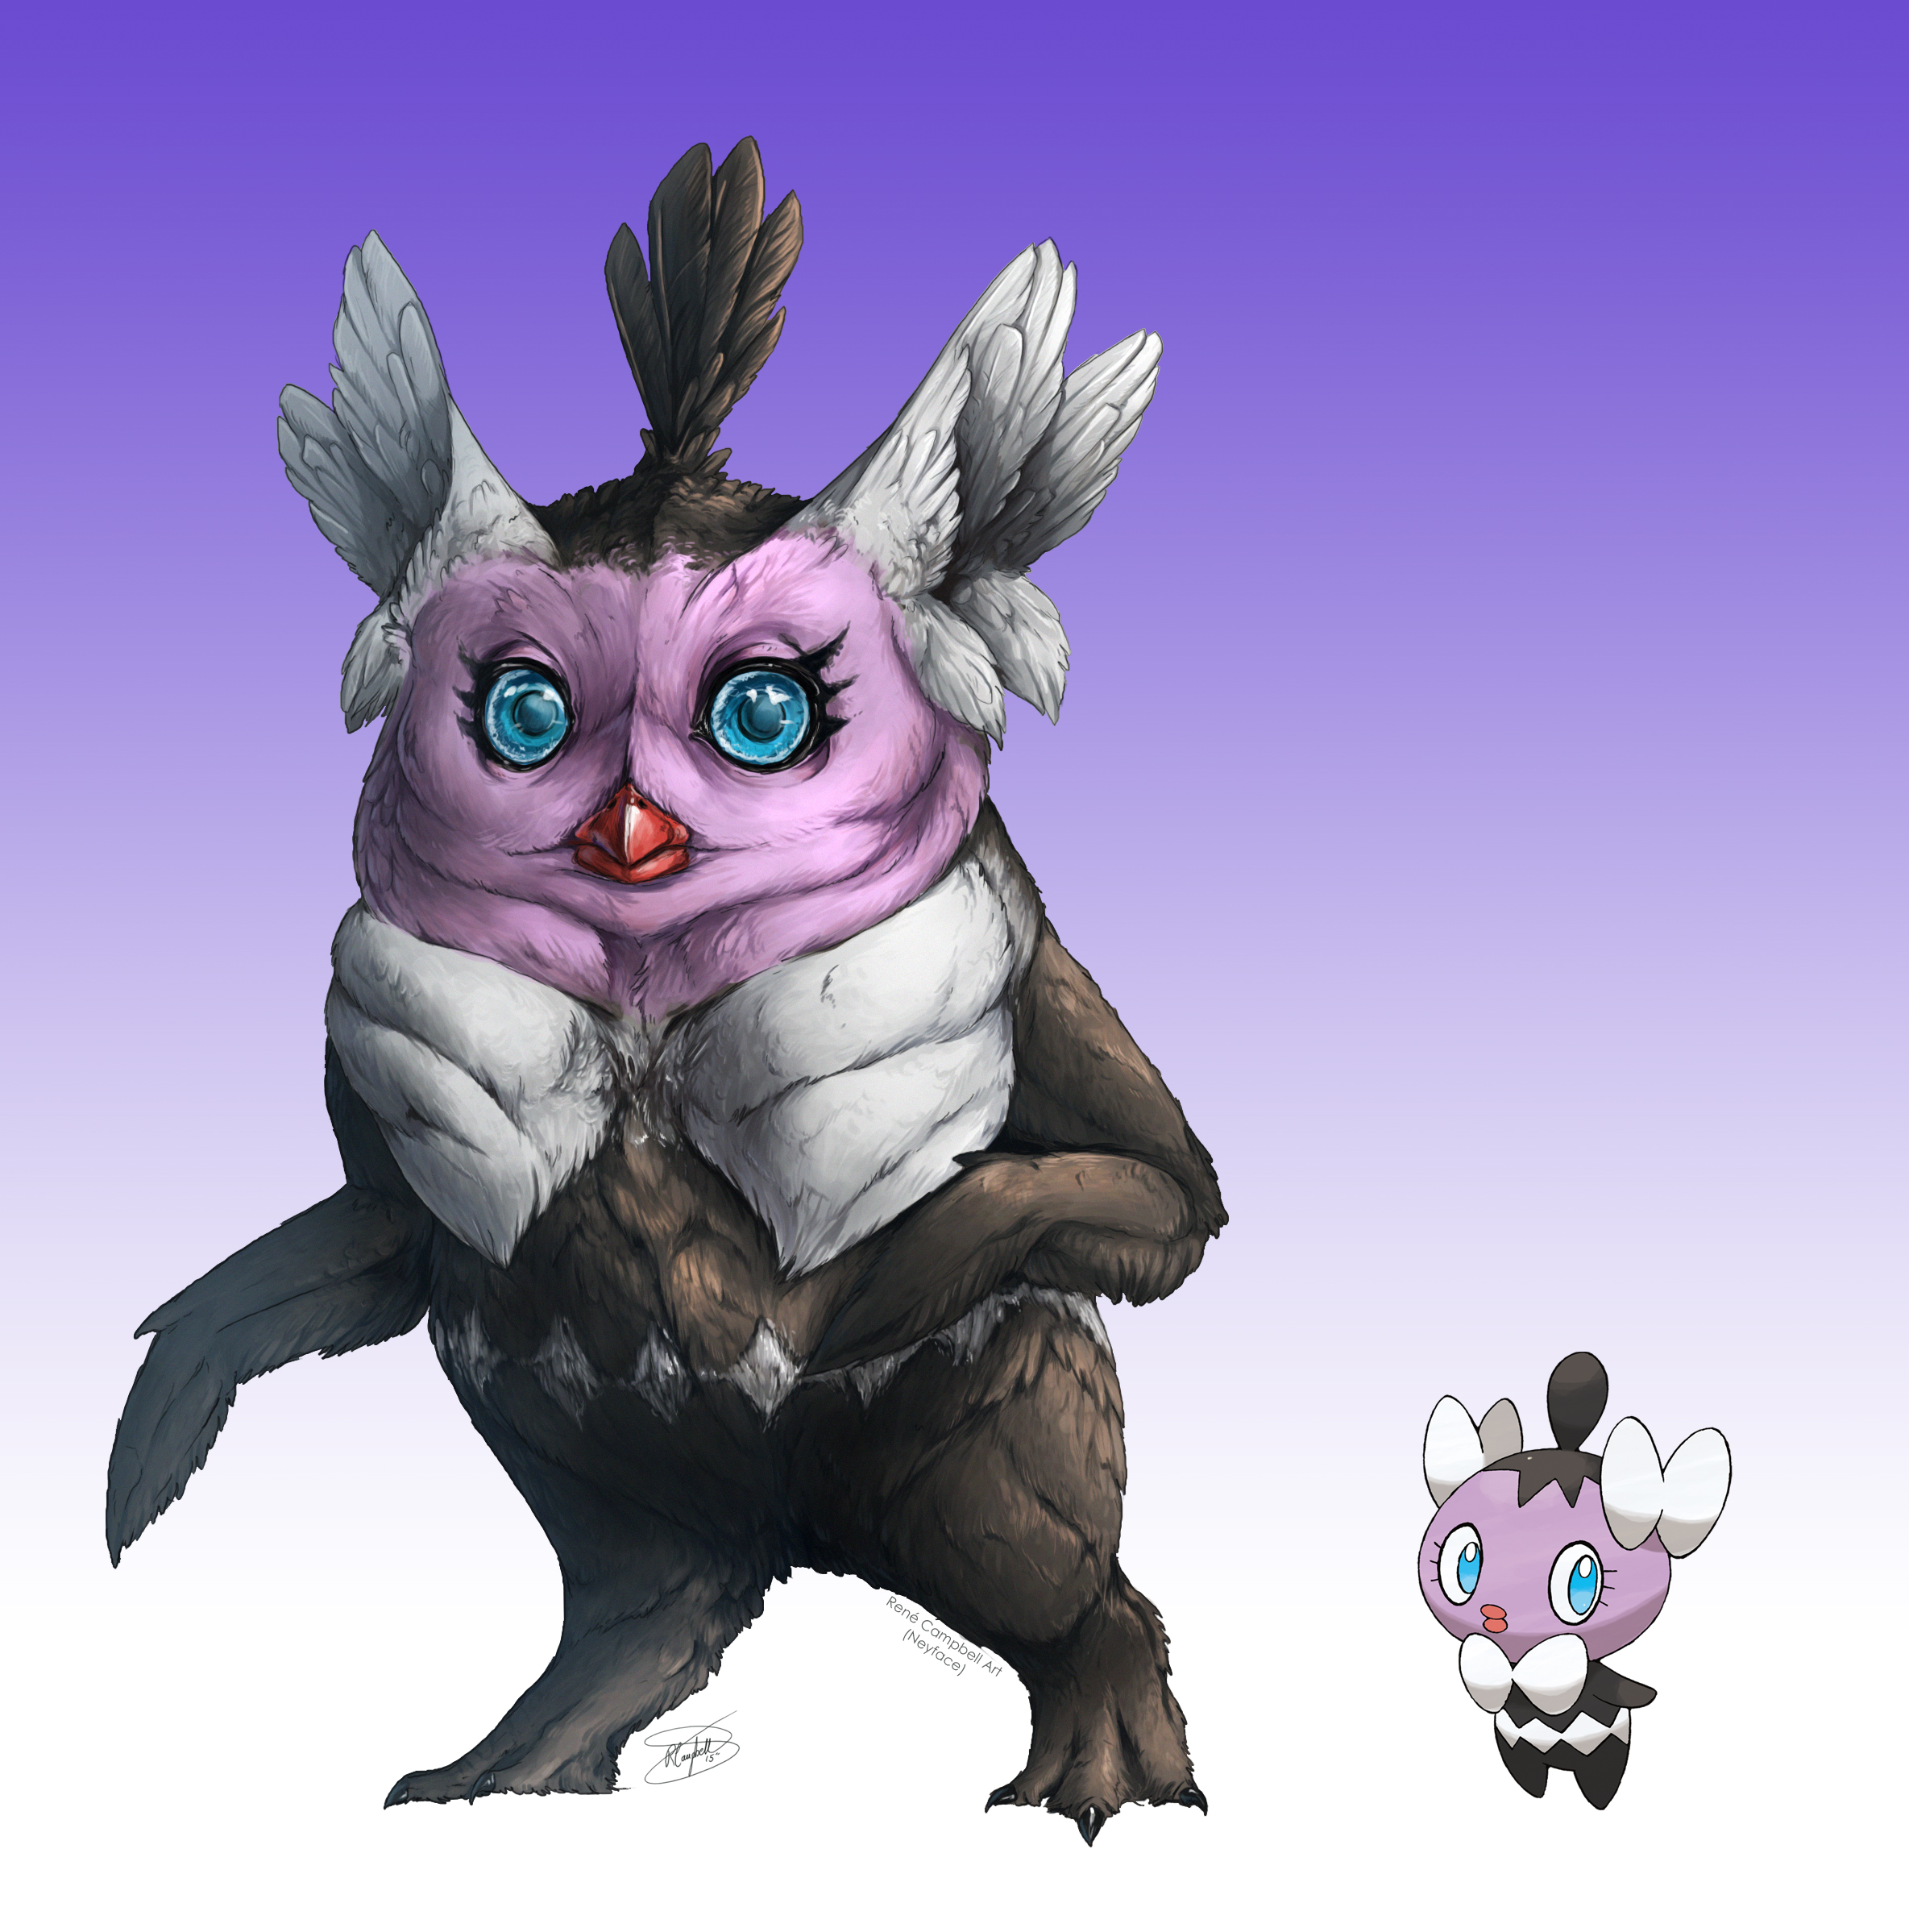 Realistic Pokemon Gothita By ReneCampbellArt On DeviantArt